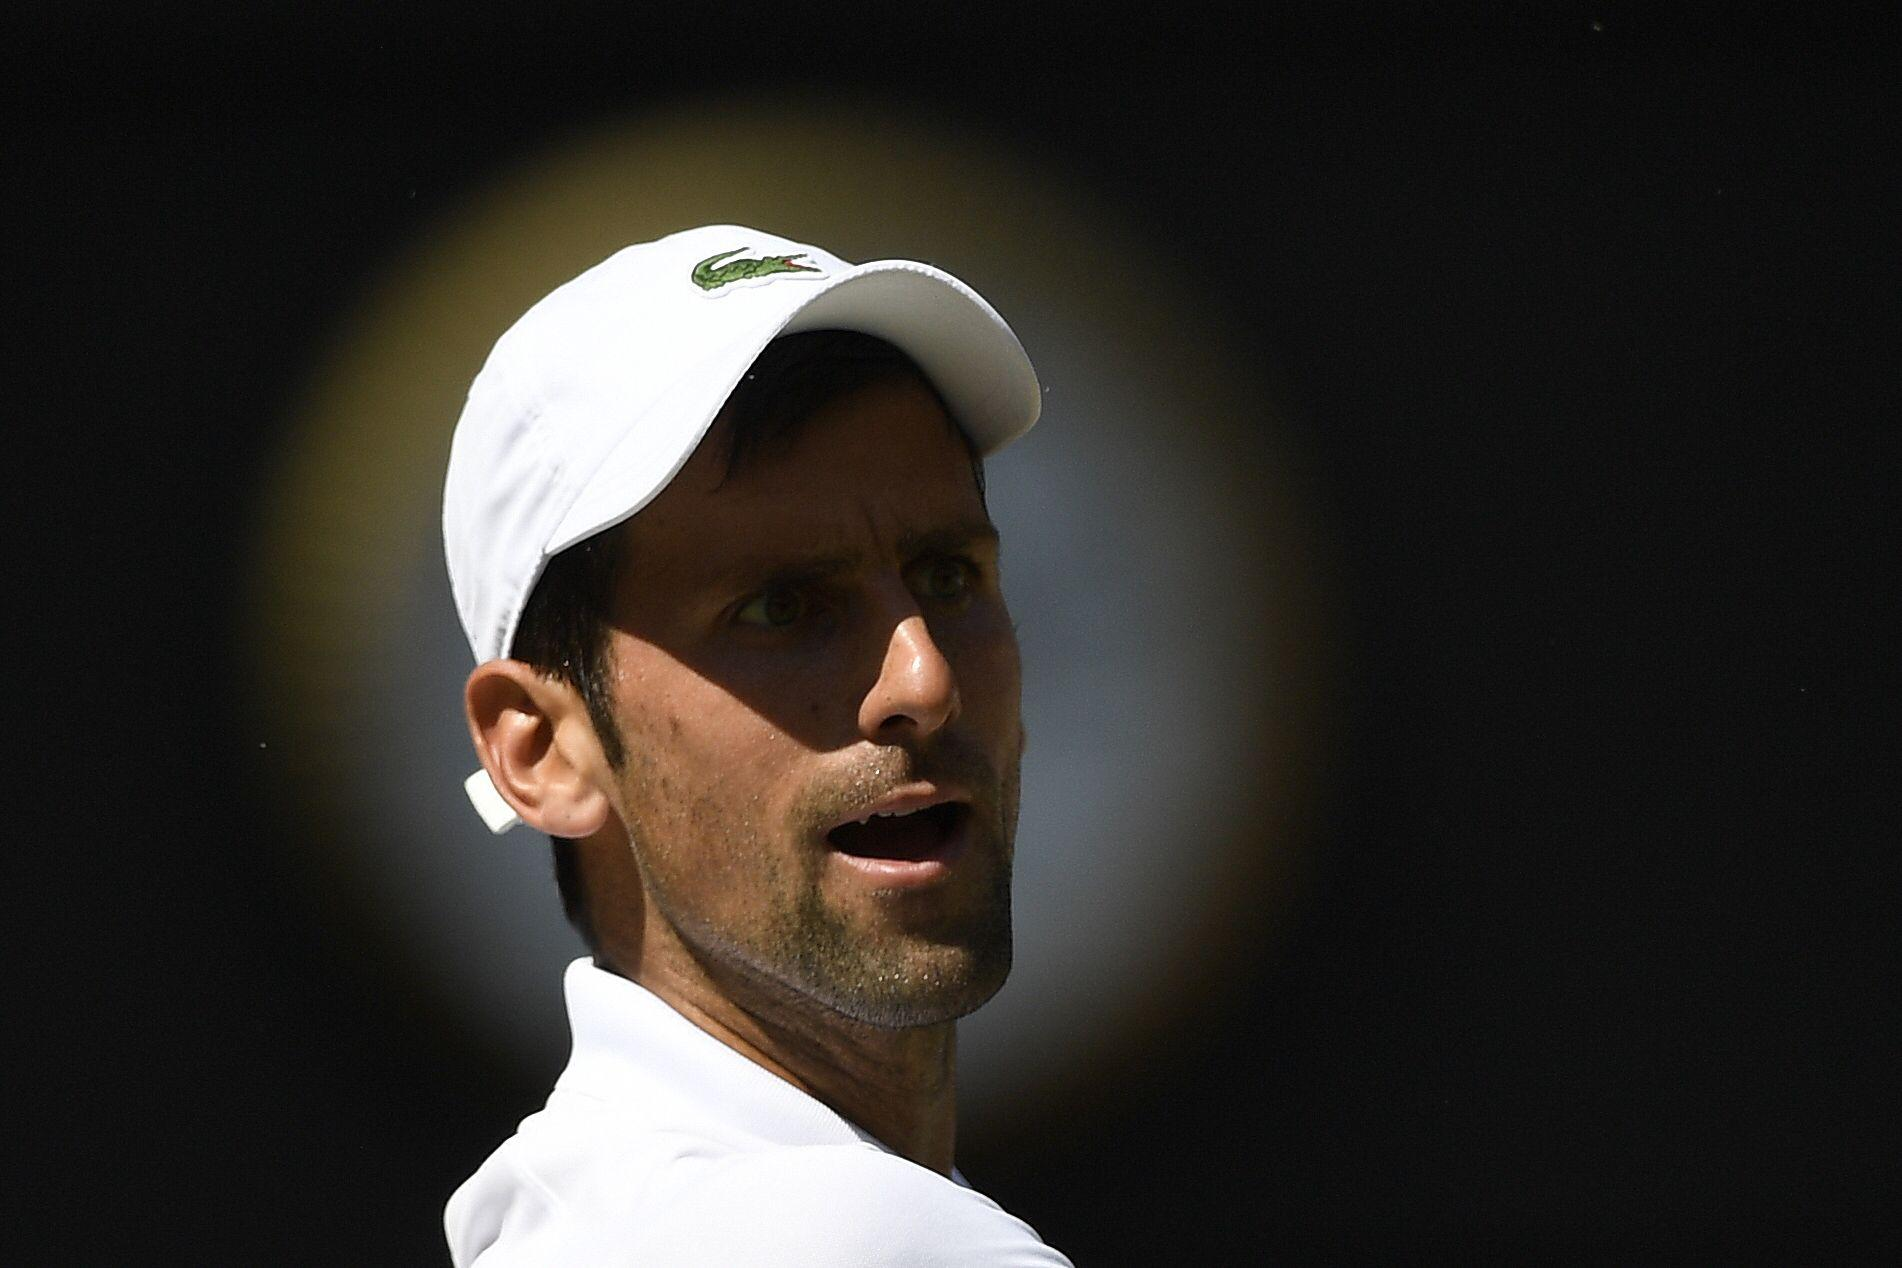 Djokovic overwhelmed poor Kevin Anderson in the first two sets